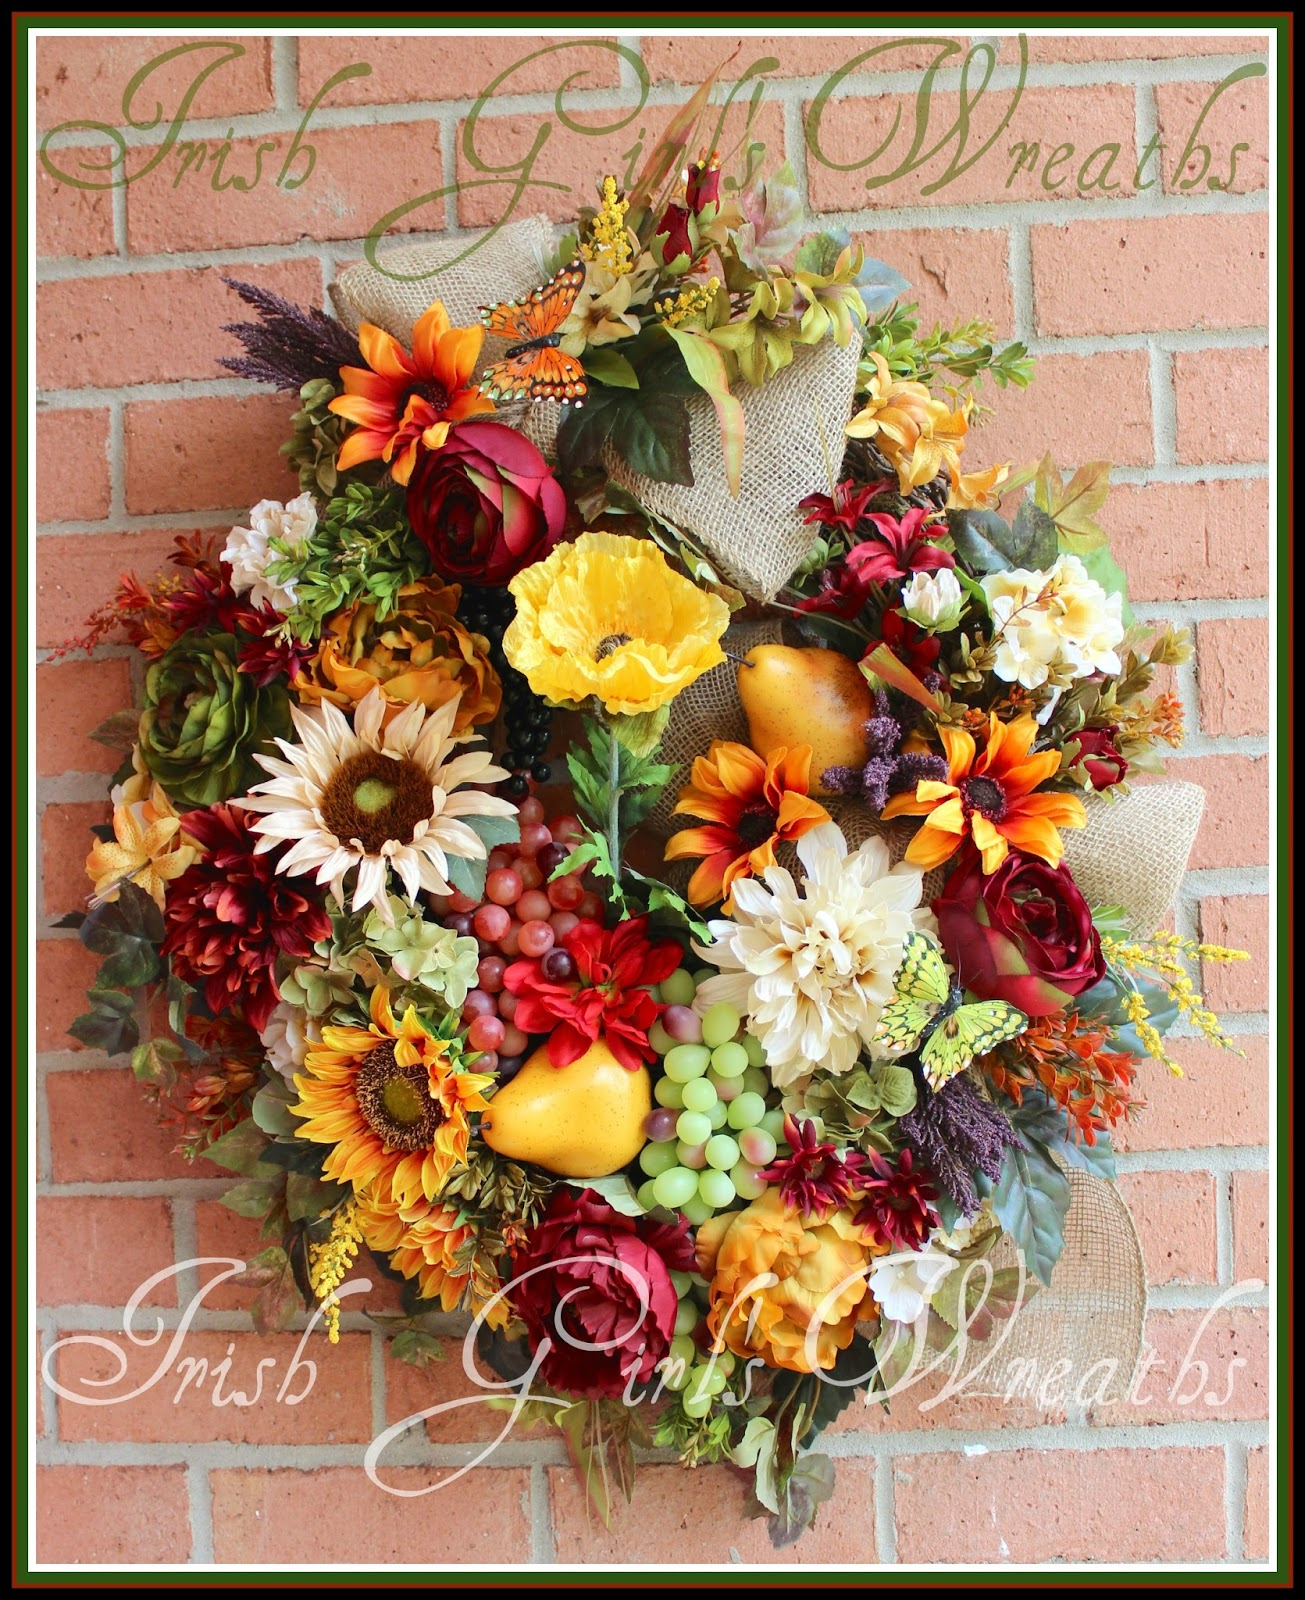 Red, Ivory and Gold XL Tuscan Sunflower Wreath, Poppy, Grapes, Pears, Kitchen, Rose, Peony, Large, Rustic, Summer, Fall